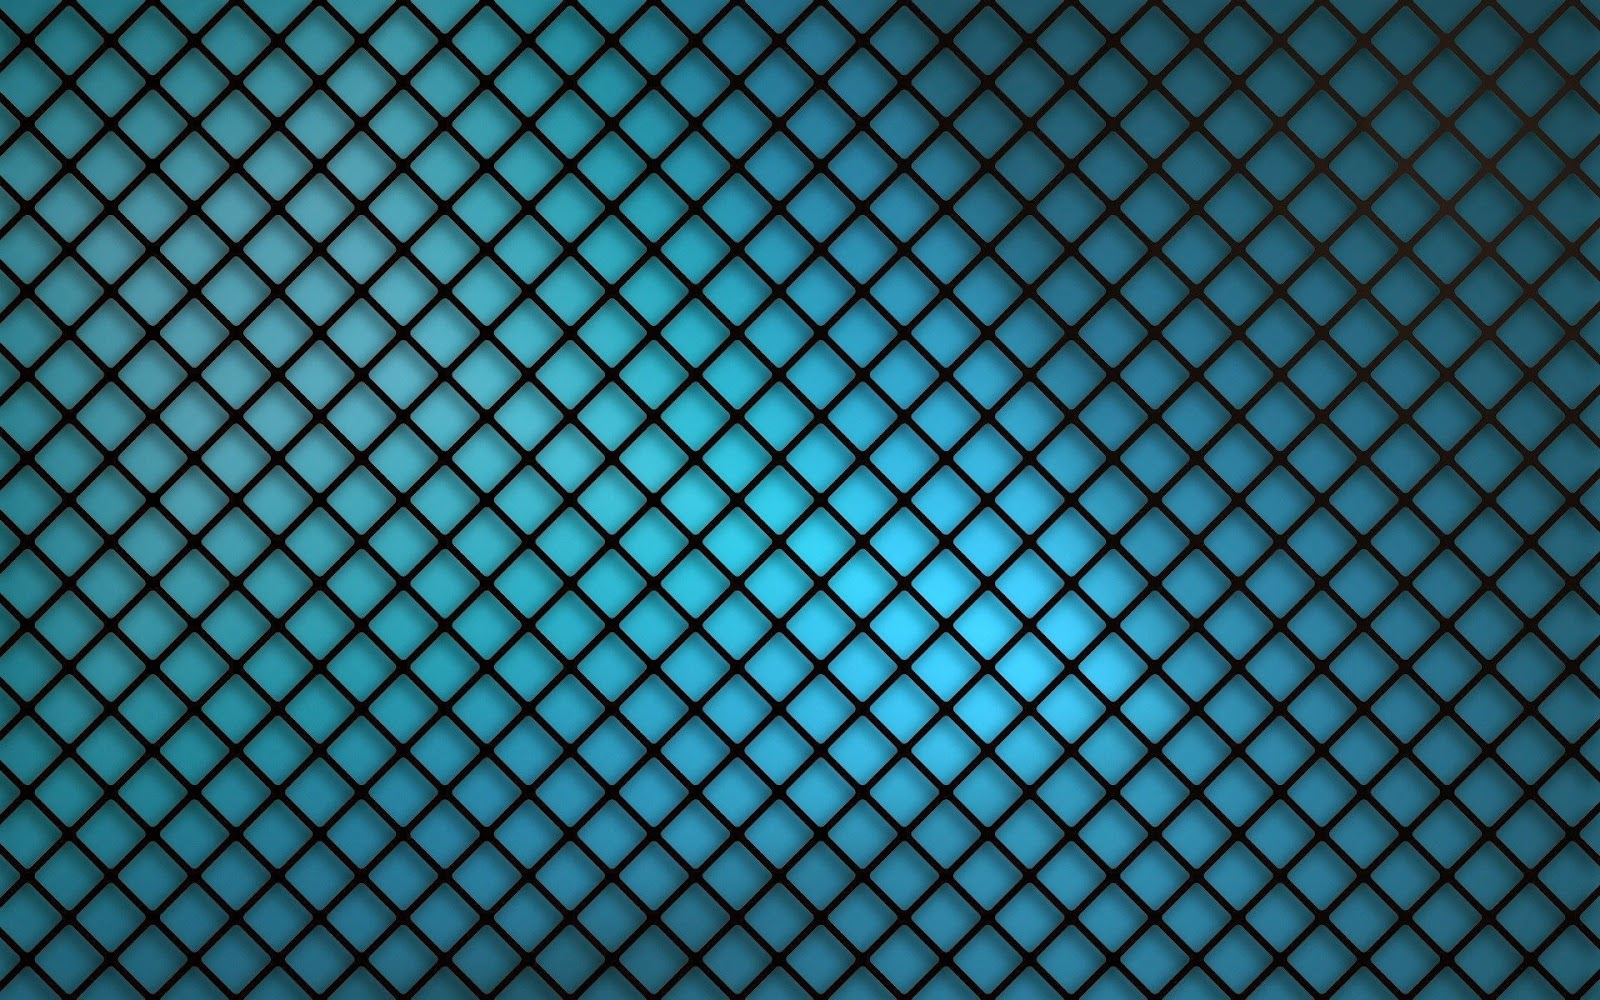 Blue Grating Abstract Hd Wallpapers Download 1600x1000